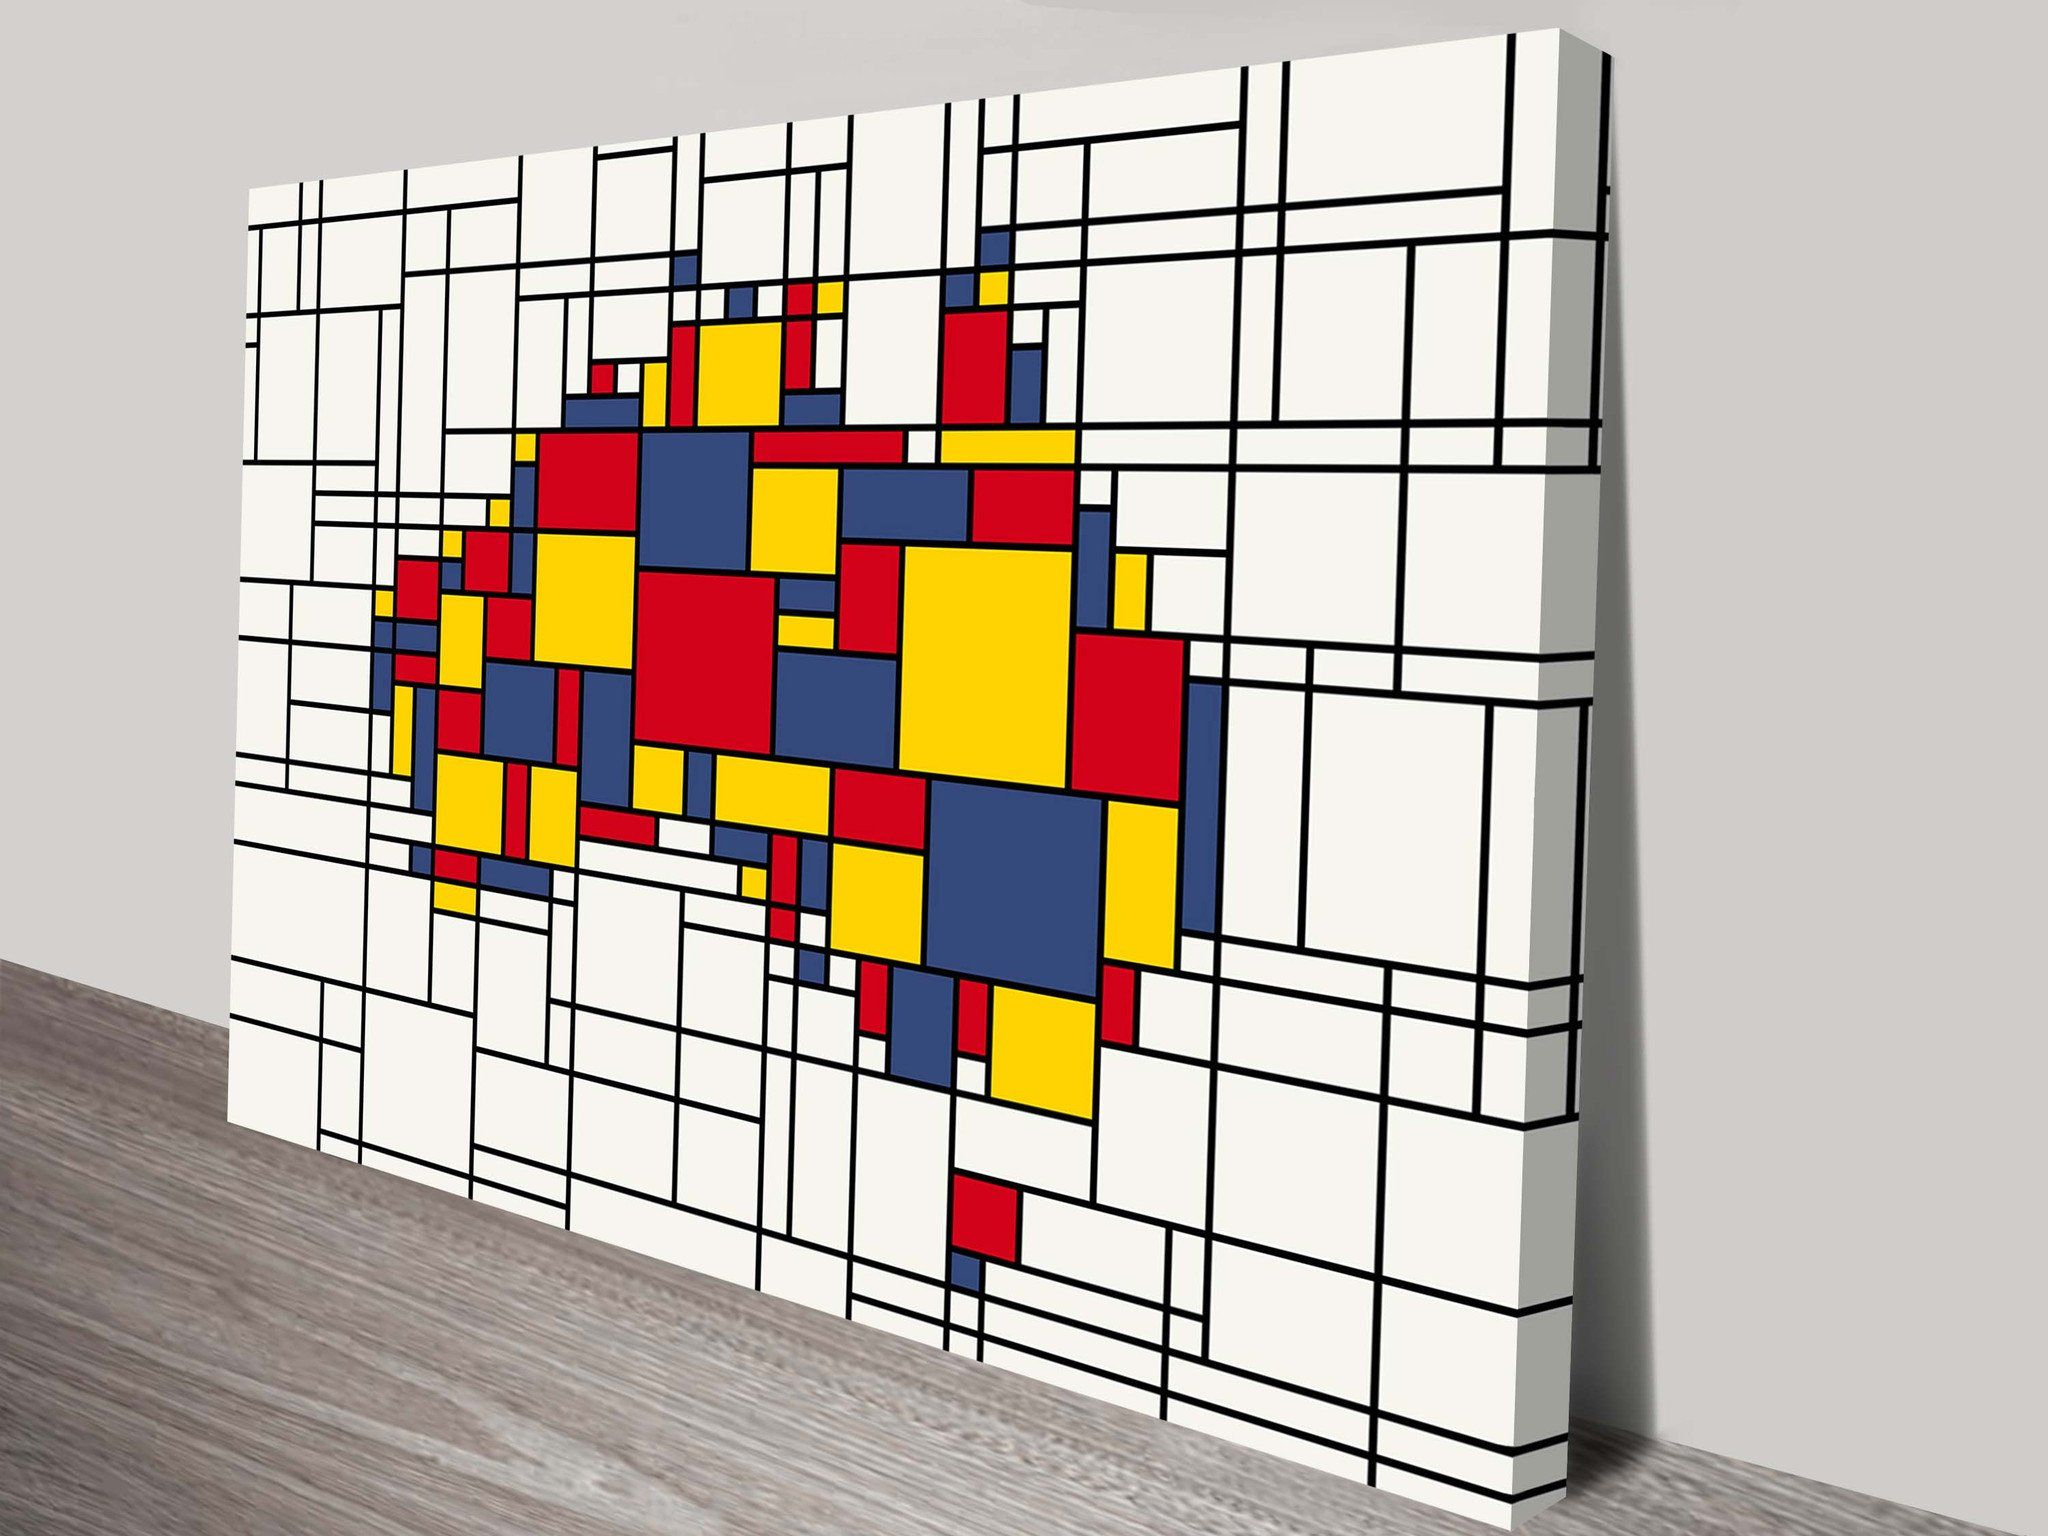 Mondrian inspired australia map michael tompsett australia map mondrian inspired australia map michael tompsett gumiabroncs Image collections